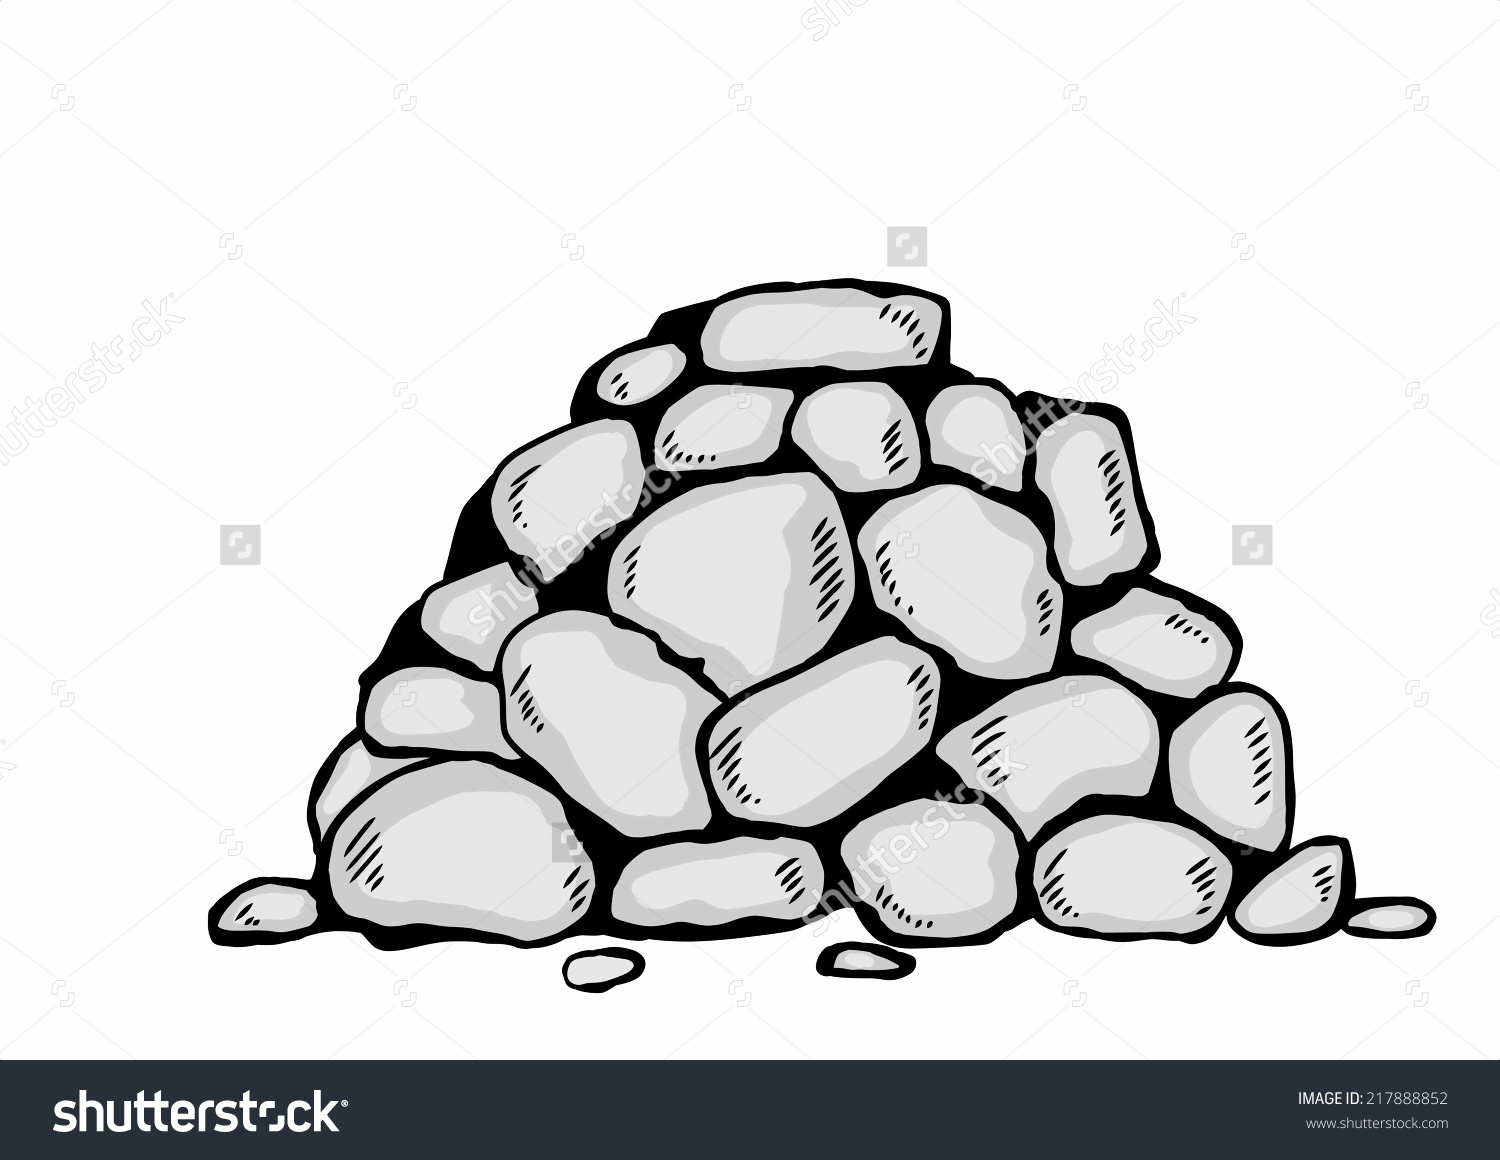 Scatter stones clipart